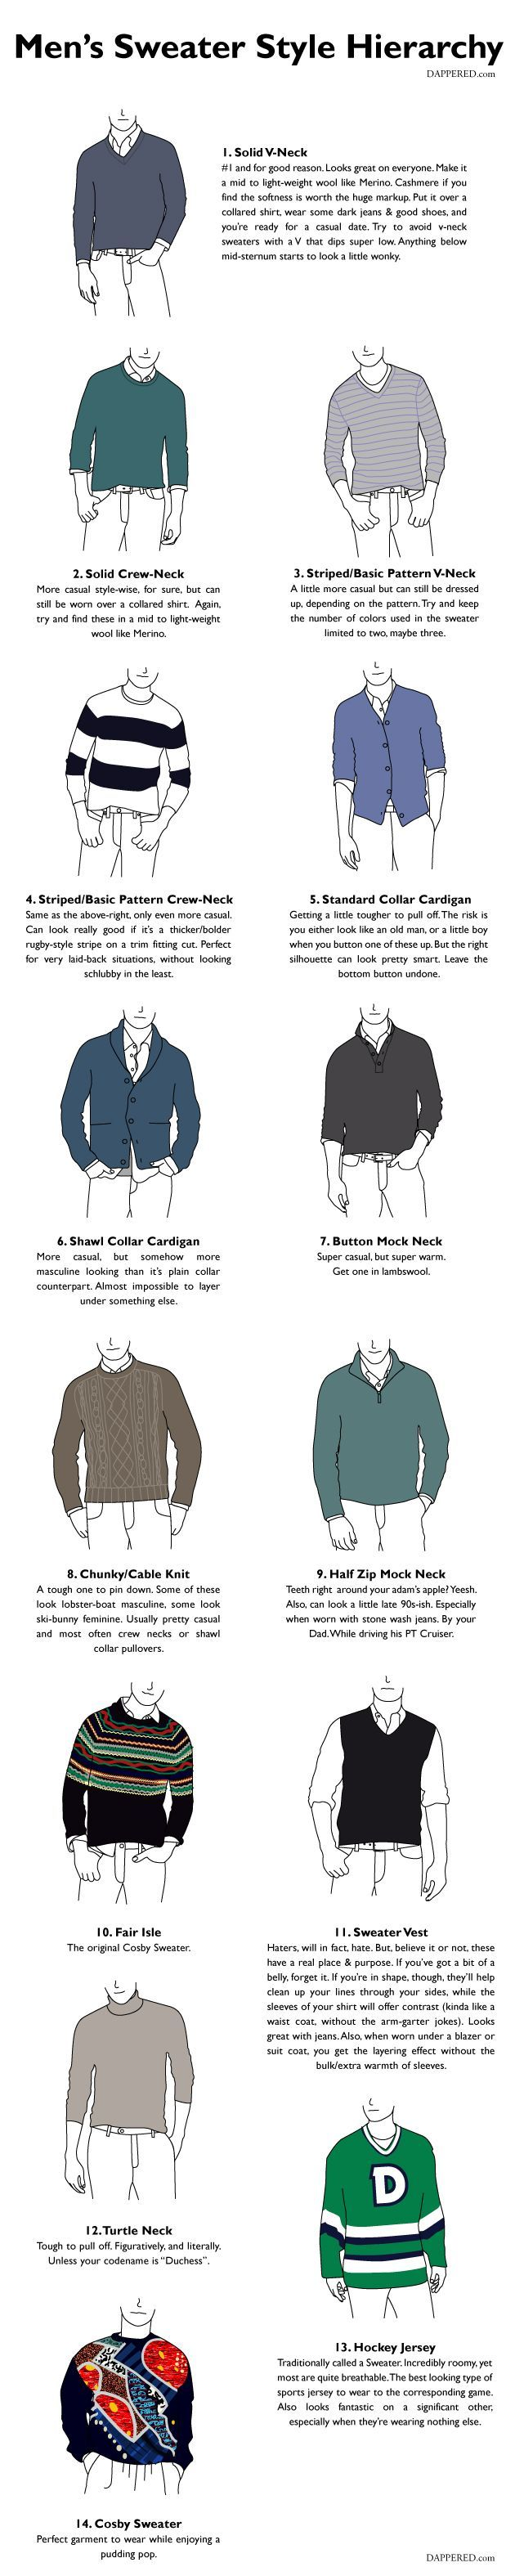 14 Different Sweaters for Men and How to Wear Them [Infographic]